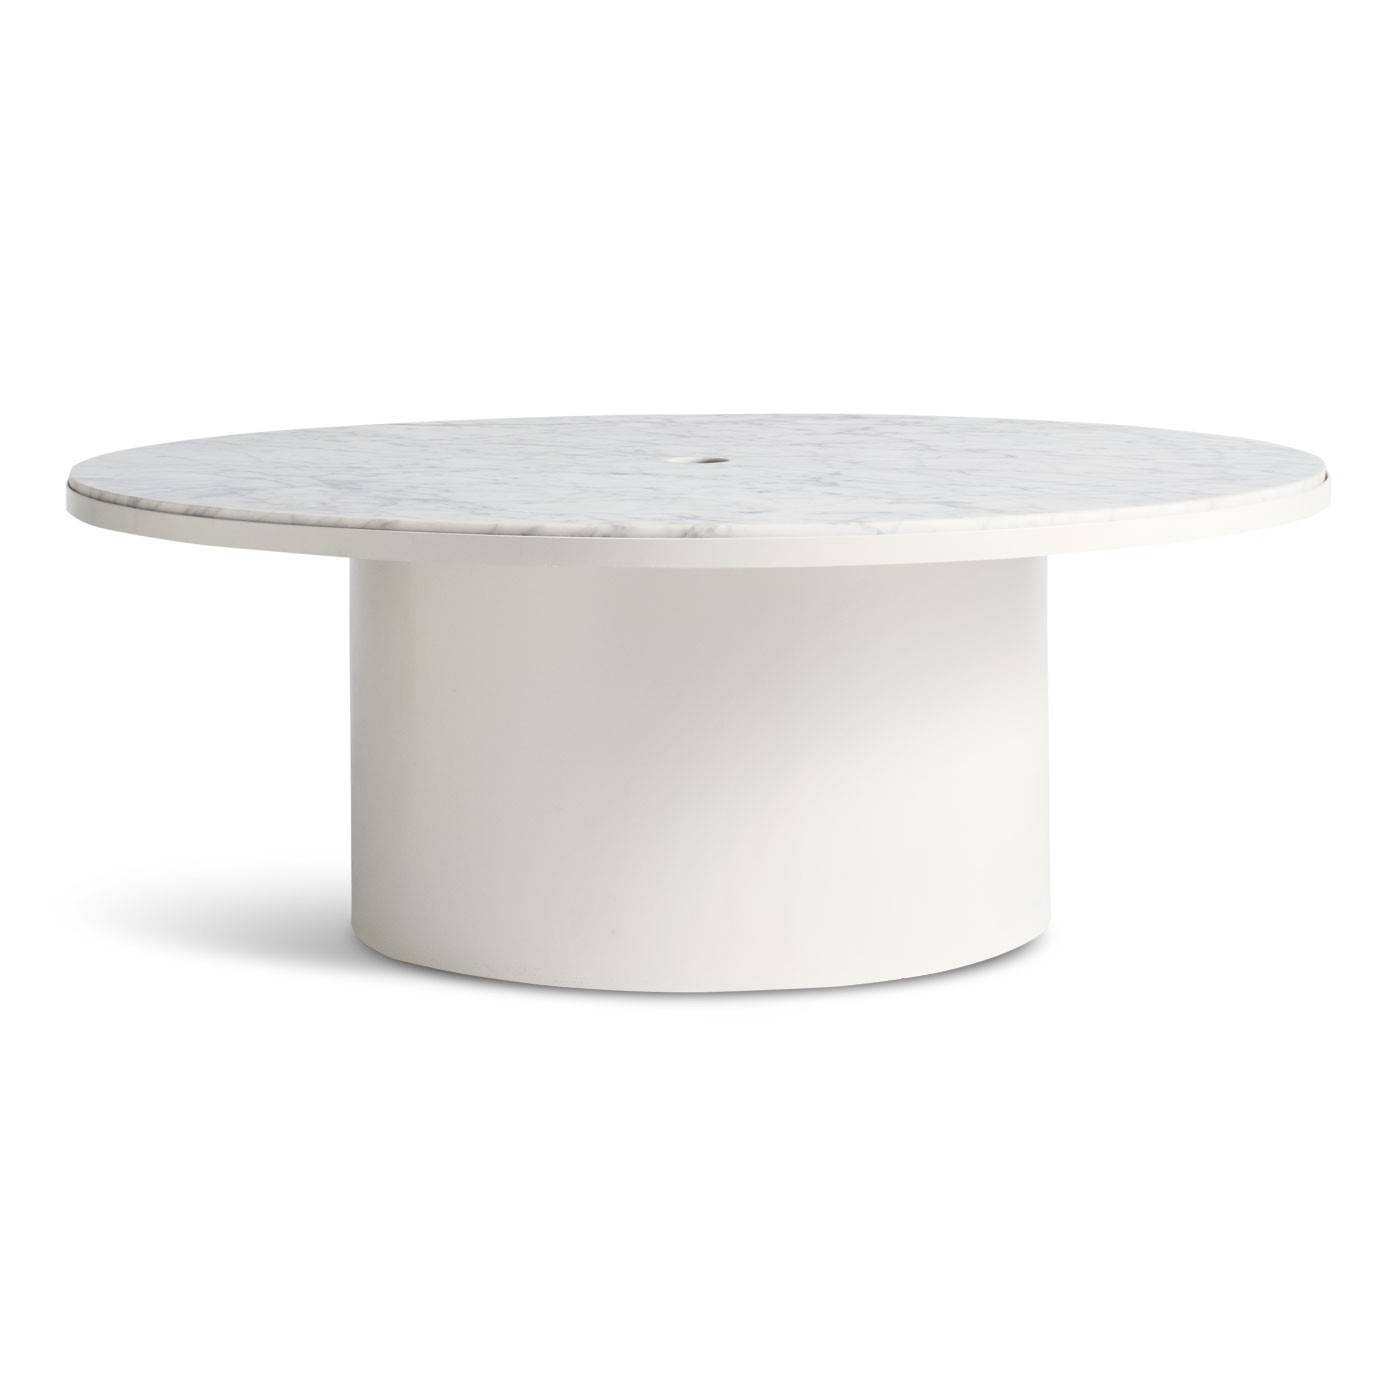 Blu Dot Free Range Coffee Table In Marble Strut 6 / Thippo for Range Coffee Tables (Image 3 of 30)